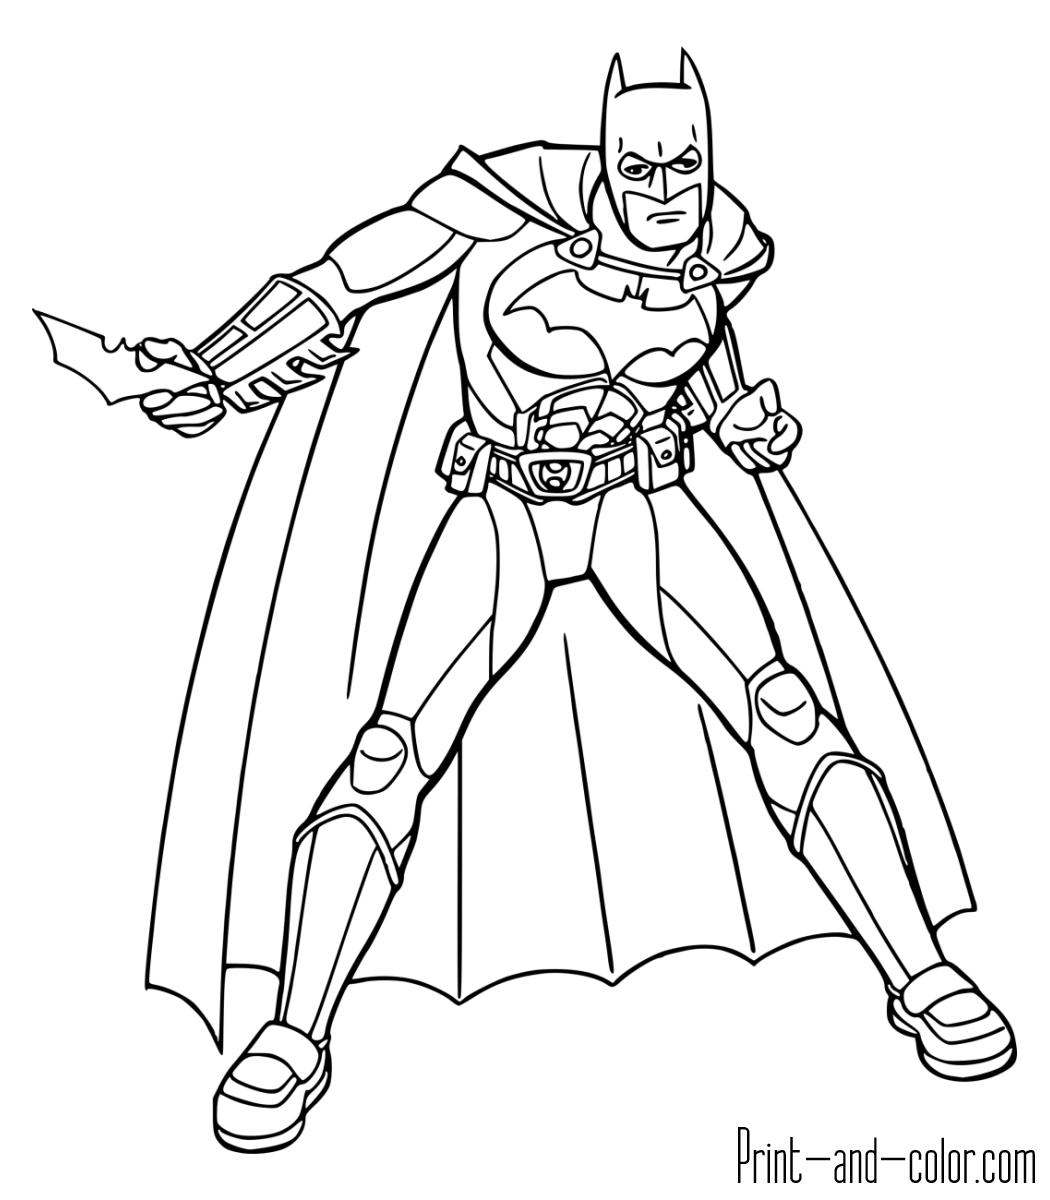 batman coloring sheets printable batman and his armor coloring pages hellokidscom sheets printable coloring batman